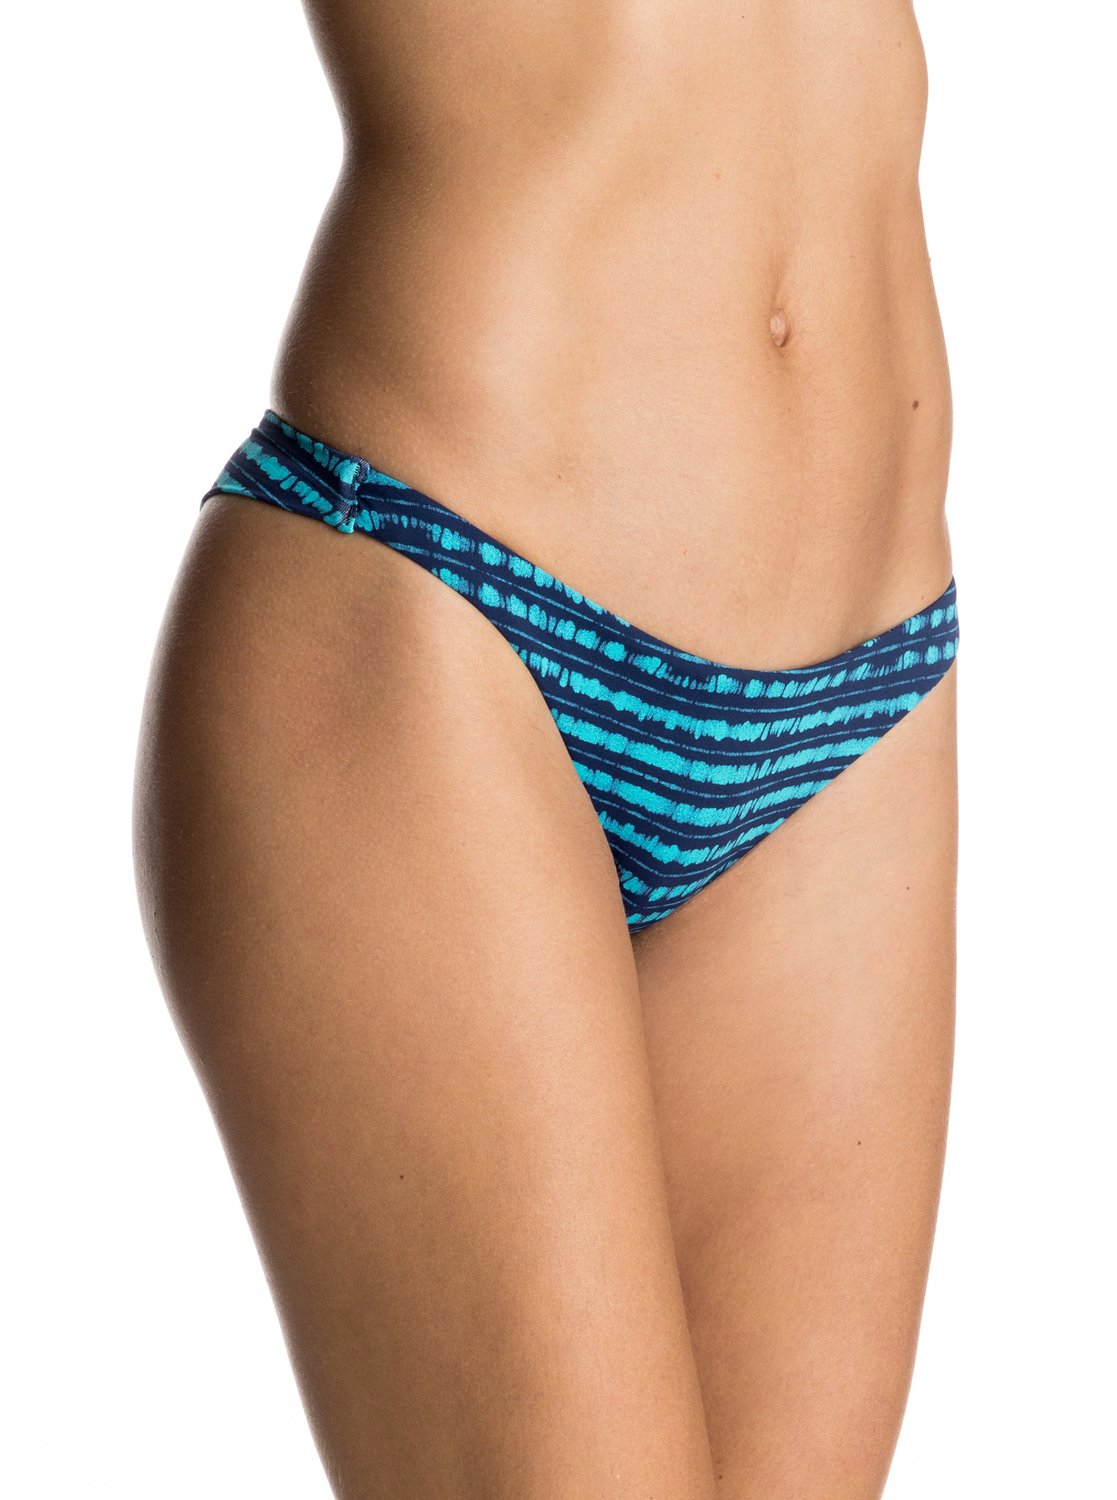 Shop the largest selection of Women's Bikini Bottoms at the web's most popular swim shop. Free Shipping on $49+. Low Price Guarantee. + Brands. 24/7 Customer Service.